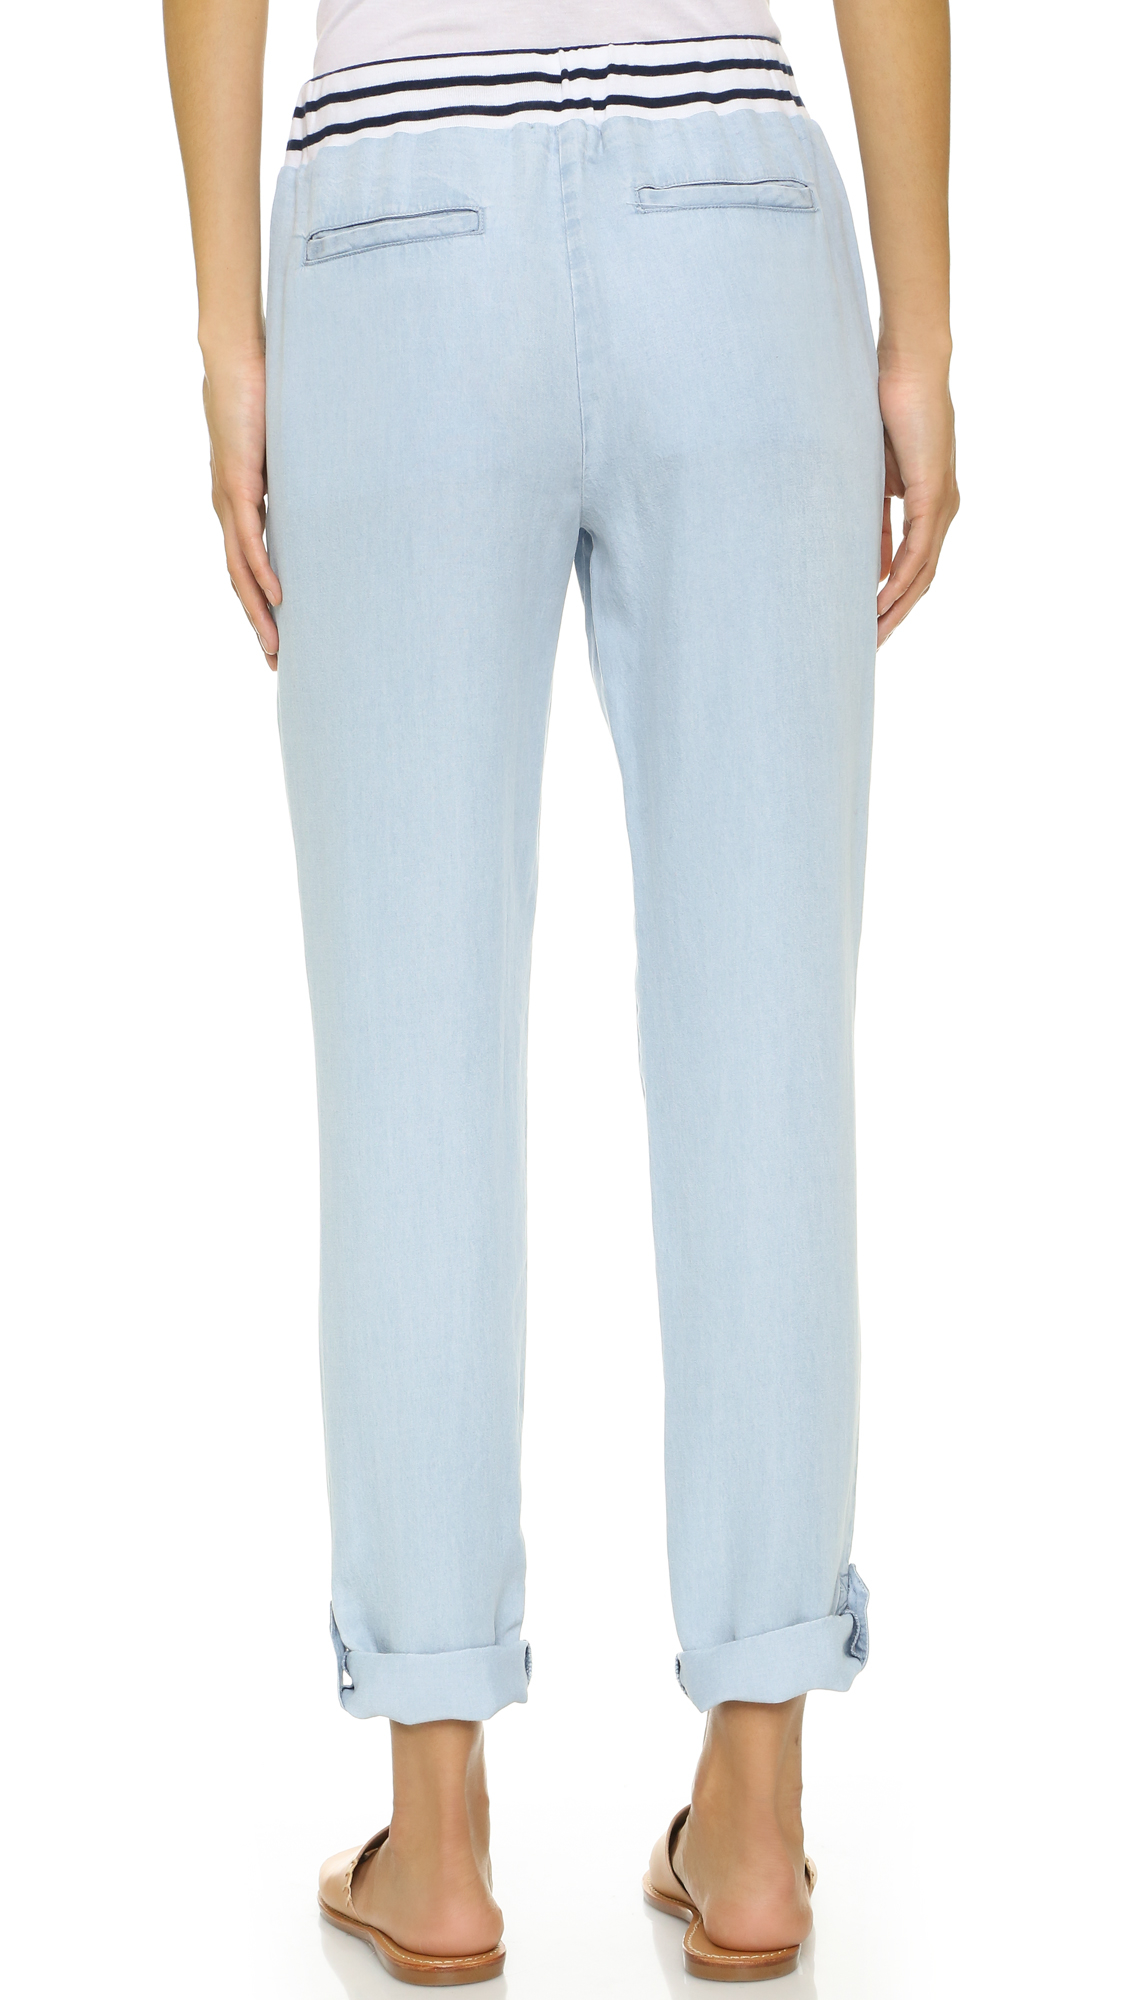 Lyst splendid cielo chambray pants in blue for Chambray jeans